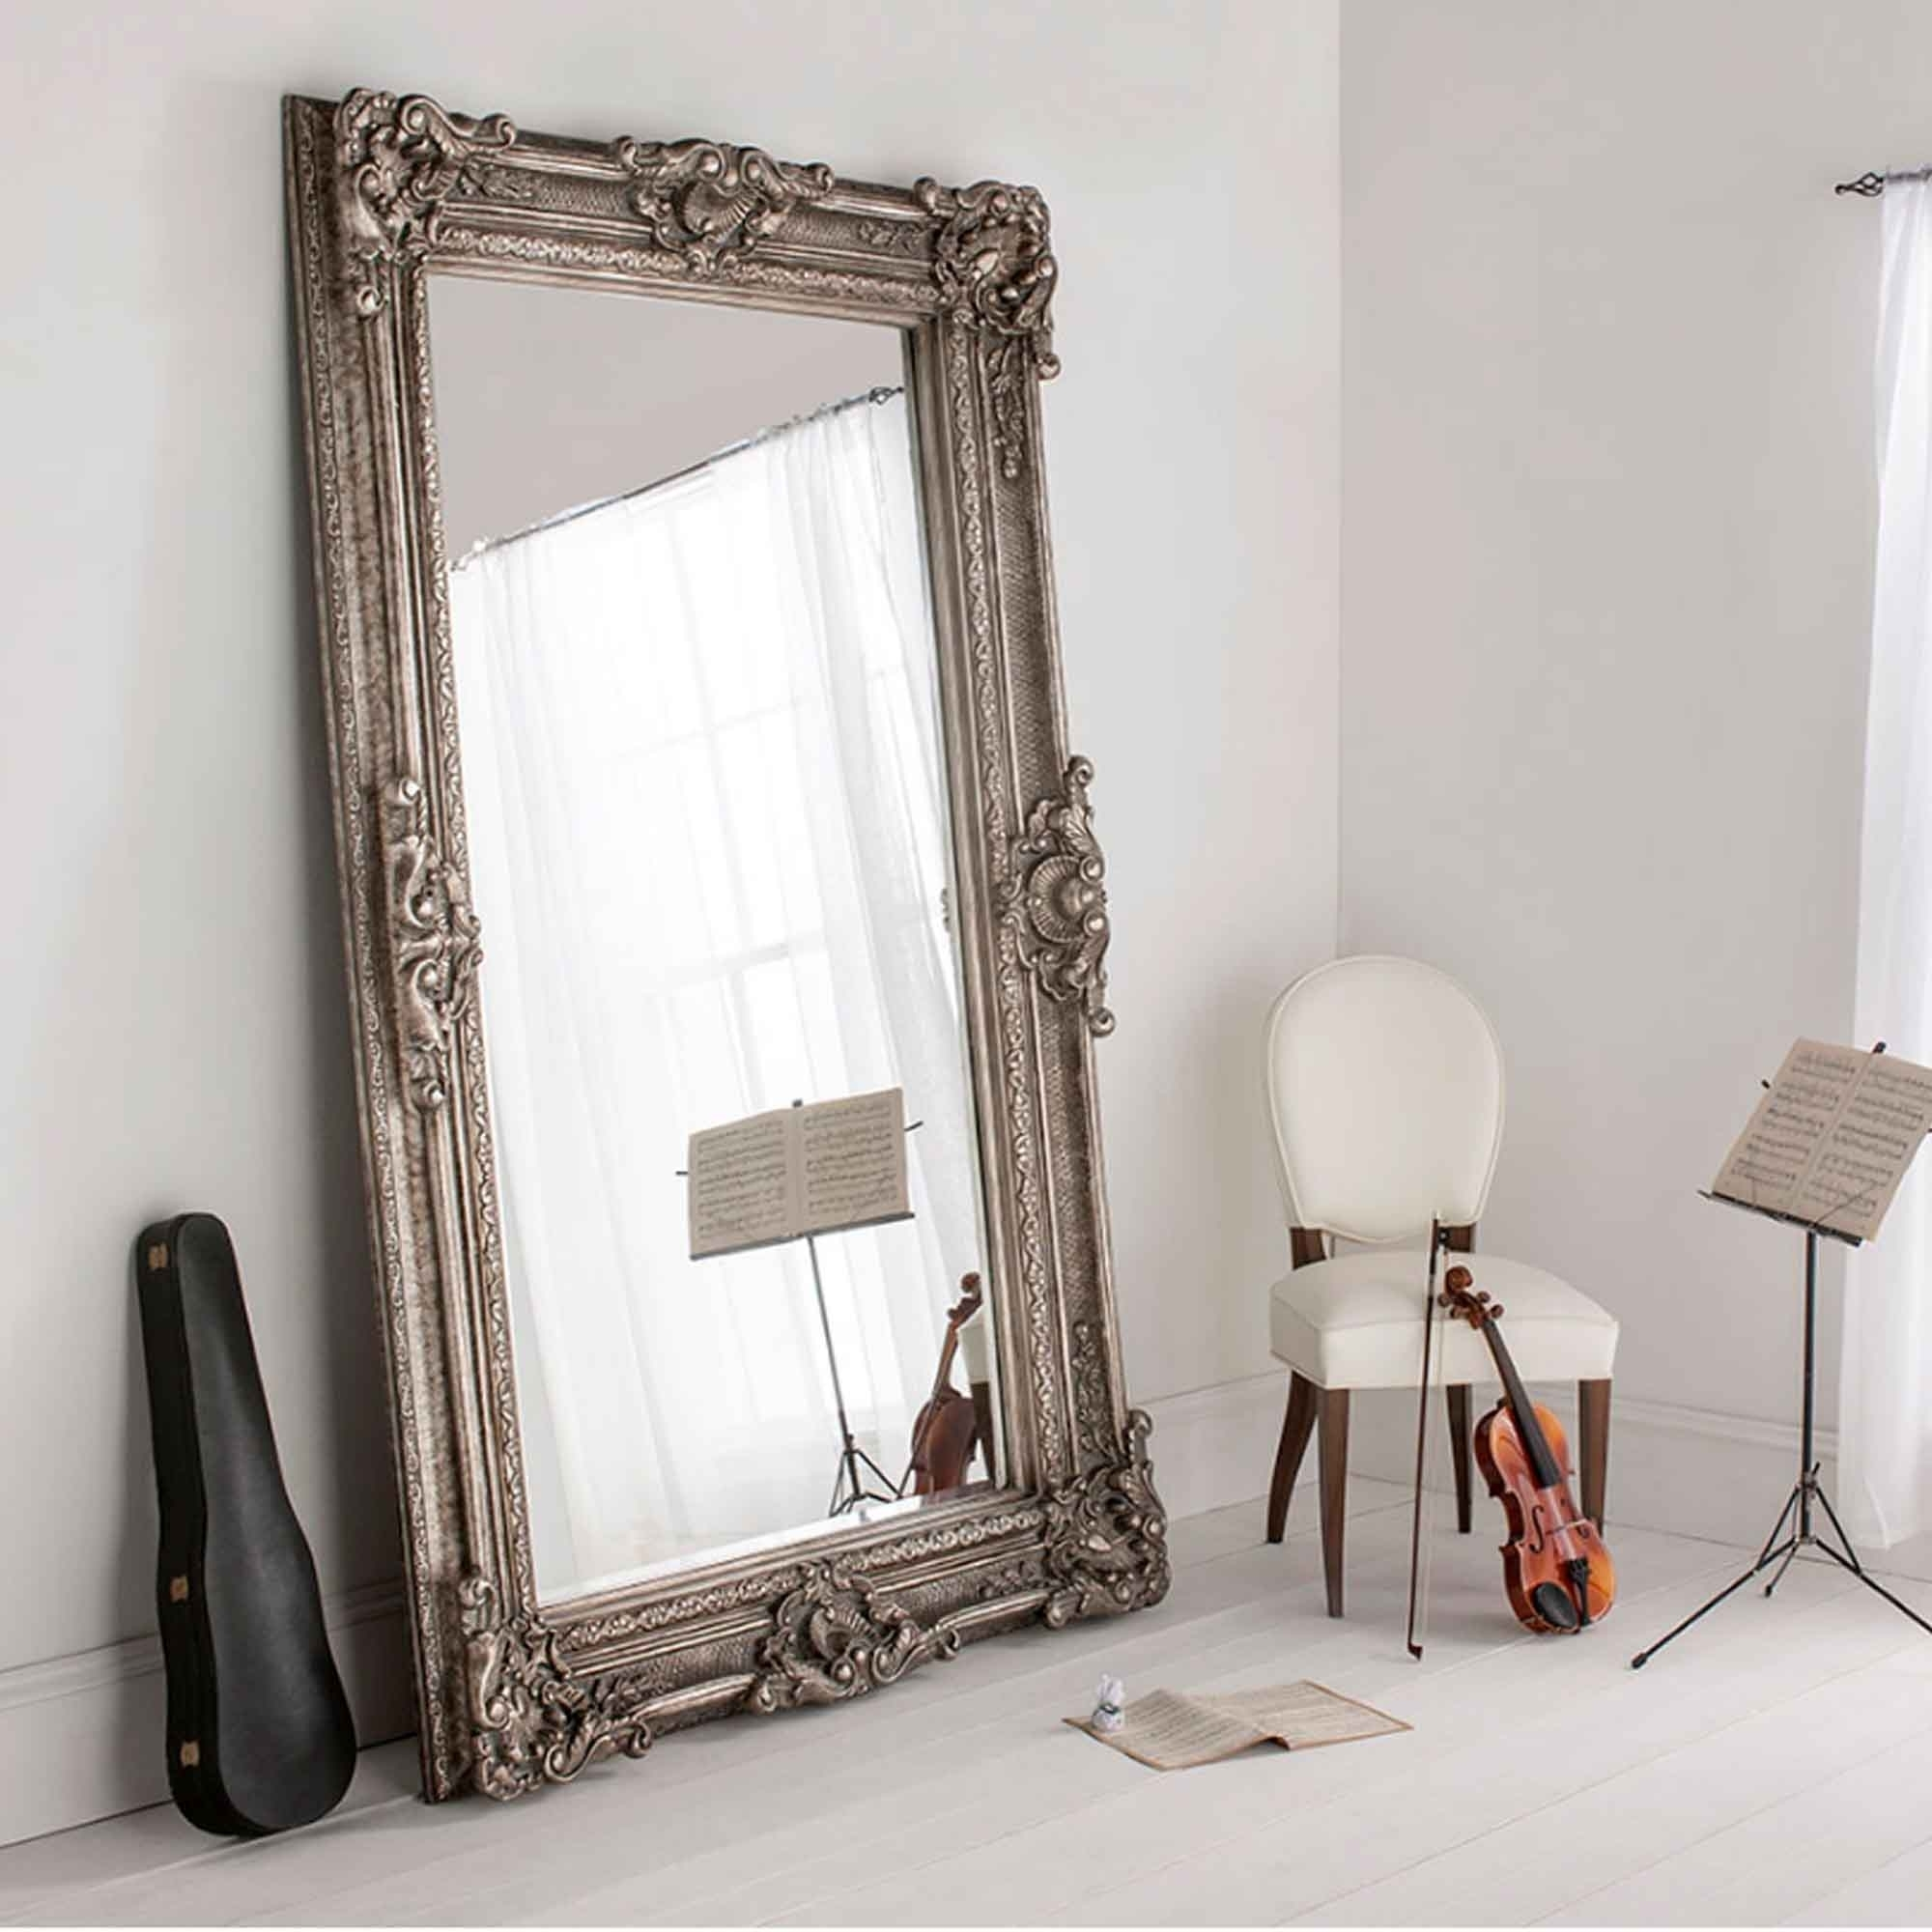 French Floor Standing Mirrors Extra Large Mirrors Floor Mirrors Pertaining To Large Floor Standing Mirrors (Image 10 of 15)